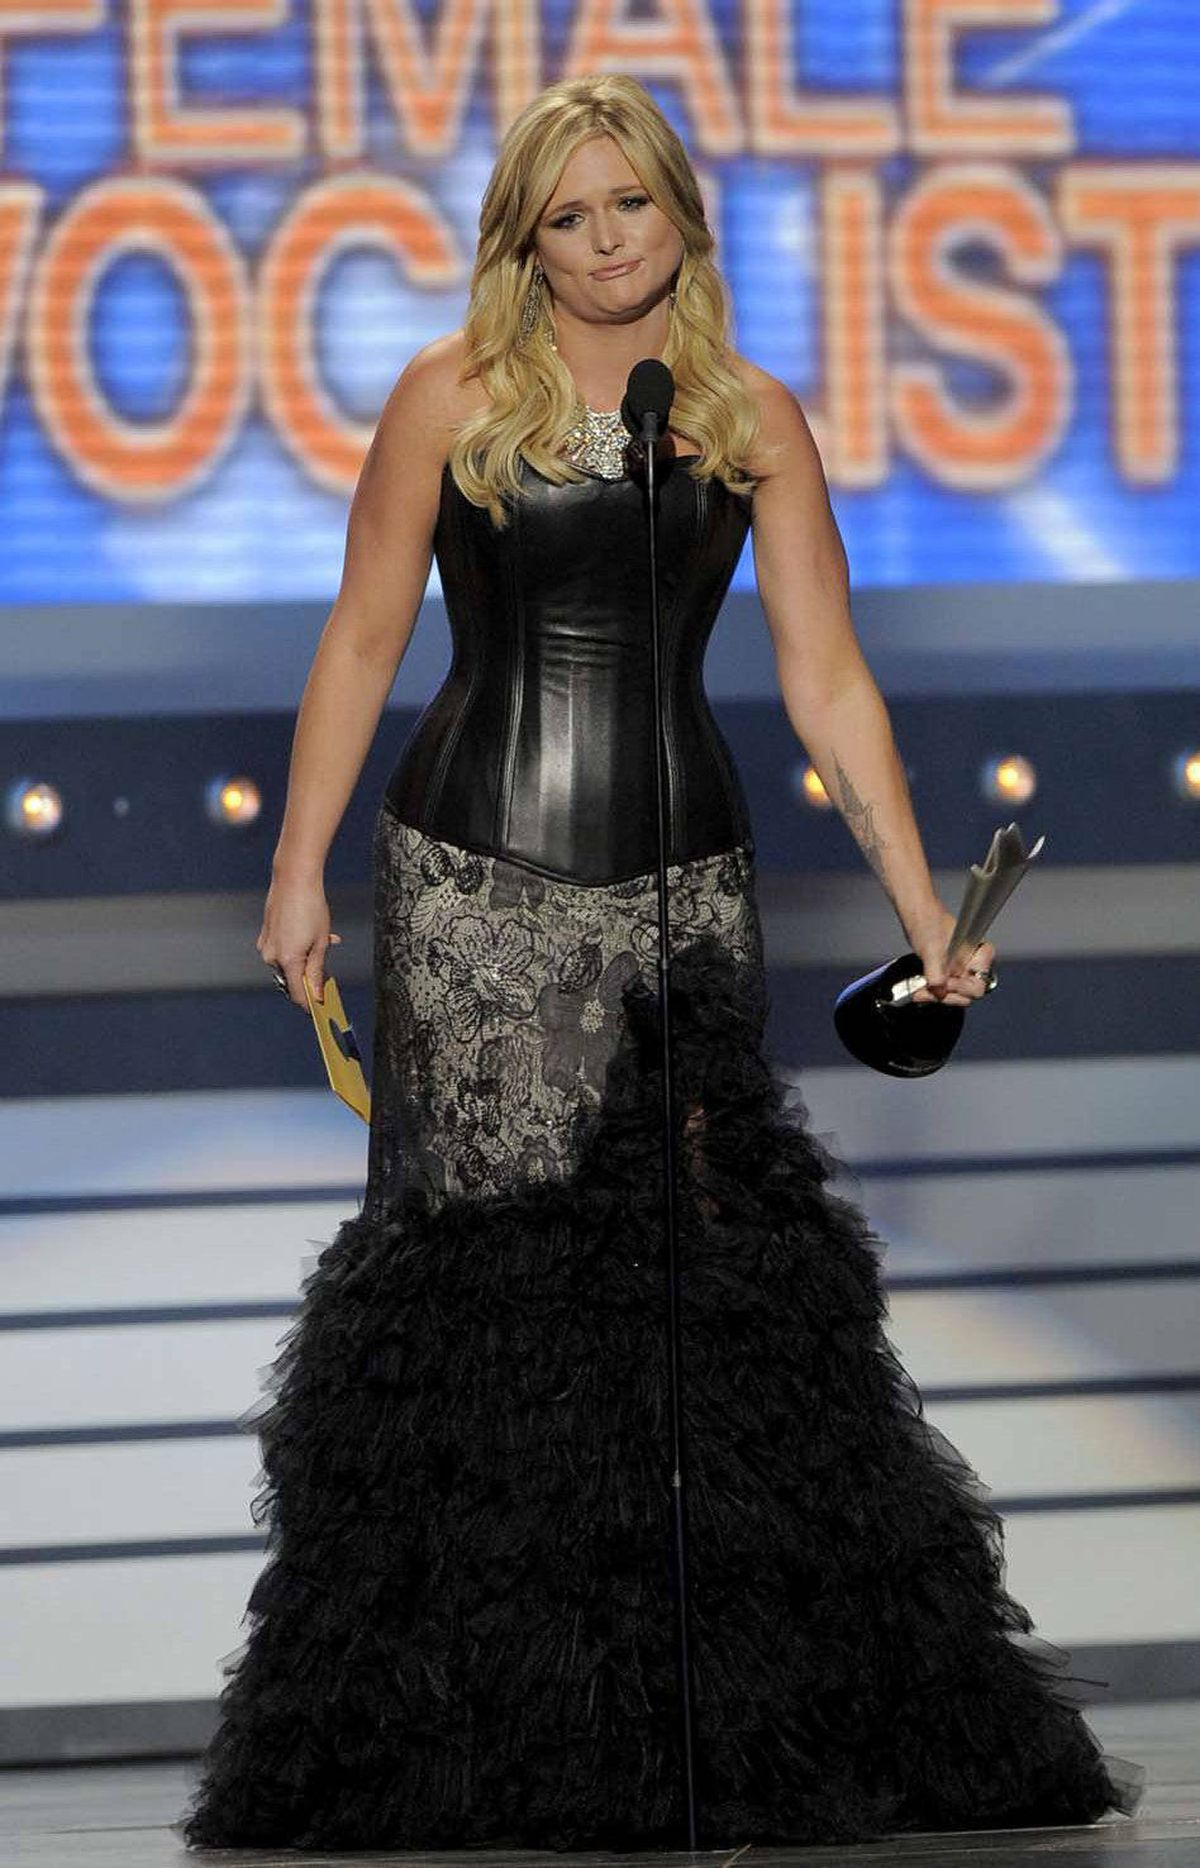 Miranda Lambert accepts one of her two awards at the Academy of Country Music Awards in an unfunny caption that serves only to set up the obvious joke in the next photo.